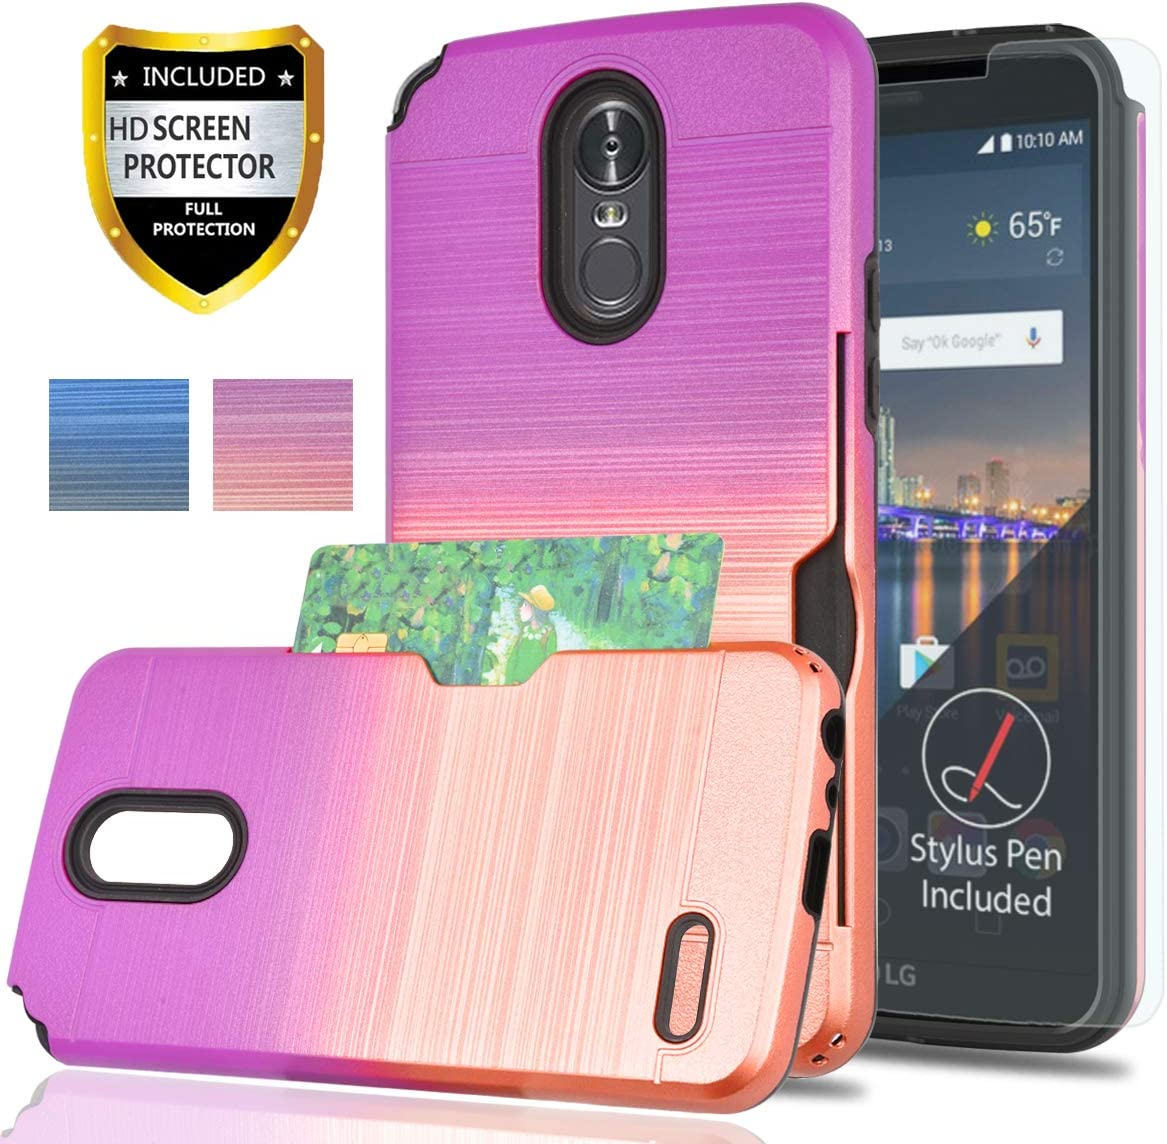 LG Stylo 3 Case, LG Stylo 3 Plus/Stylus 3 Case with Phone Screen Protector,YmhxcY[Credit Card Holder][Not Wallet] Dual Layer Shockproof Protective Cover for LG LS777-GB Rose Gold/Purple